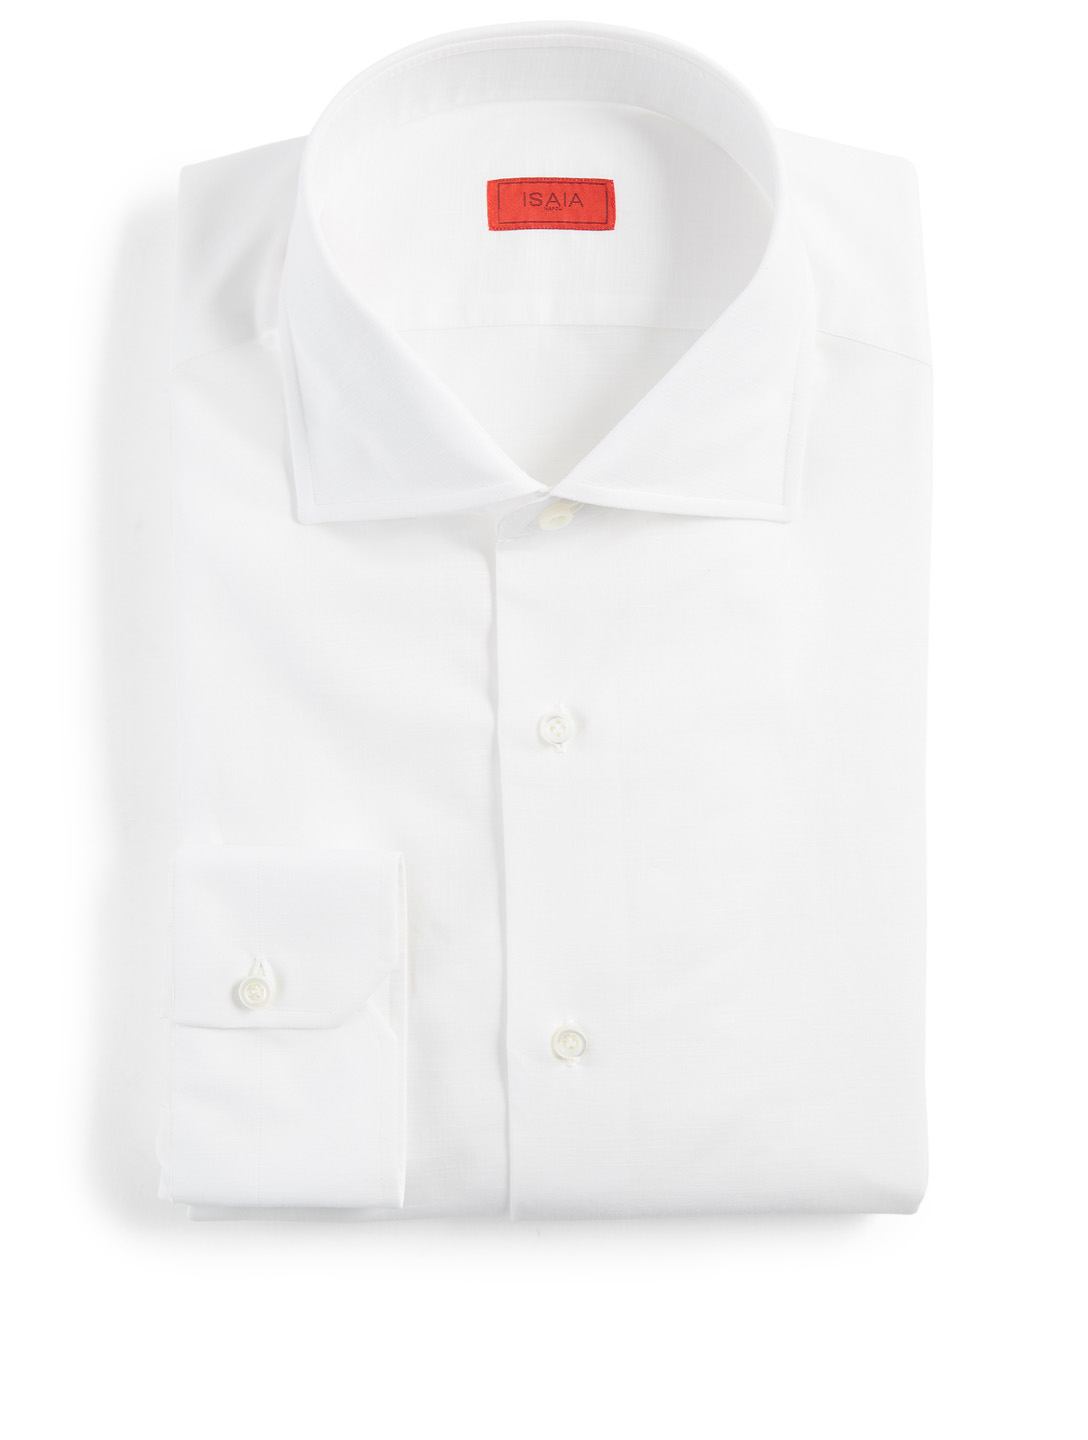 ISAIA Chambray Dress Shirt Men's White